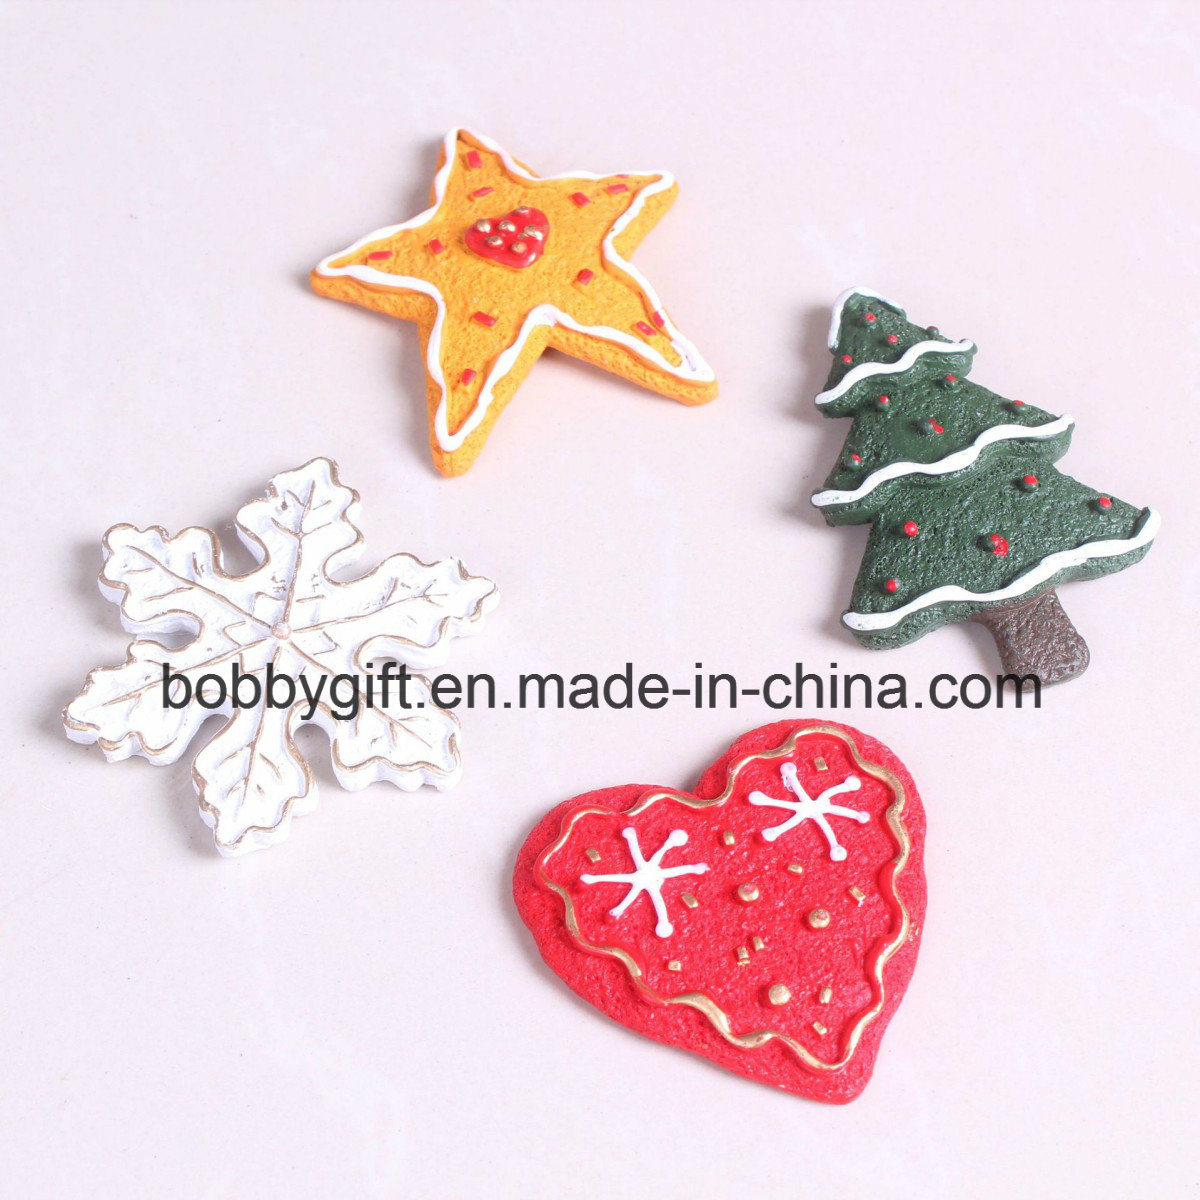 China Hotsale Resin Fridge Magnet Christmas Gifts for Sale - China ...